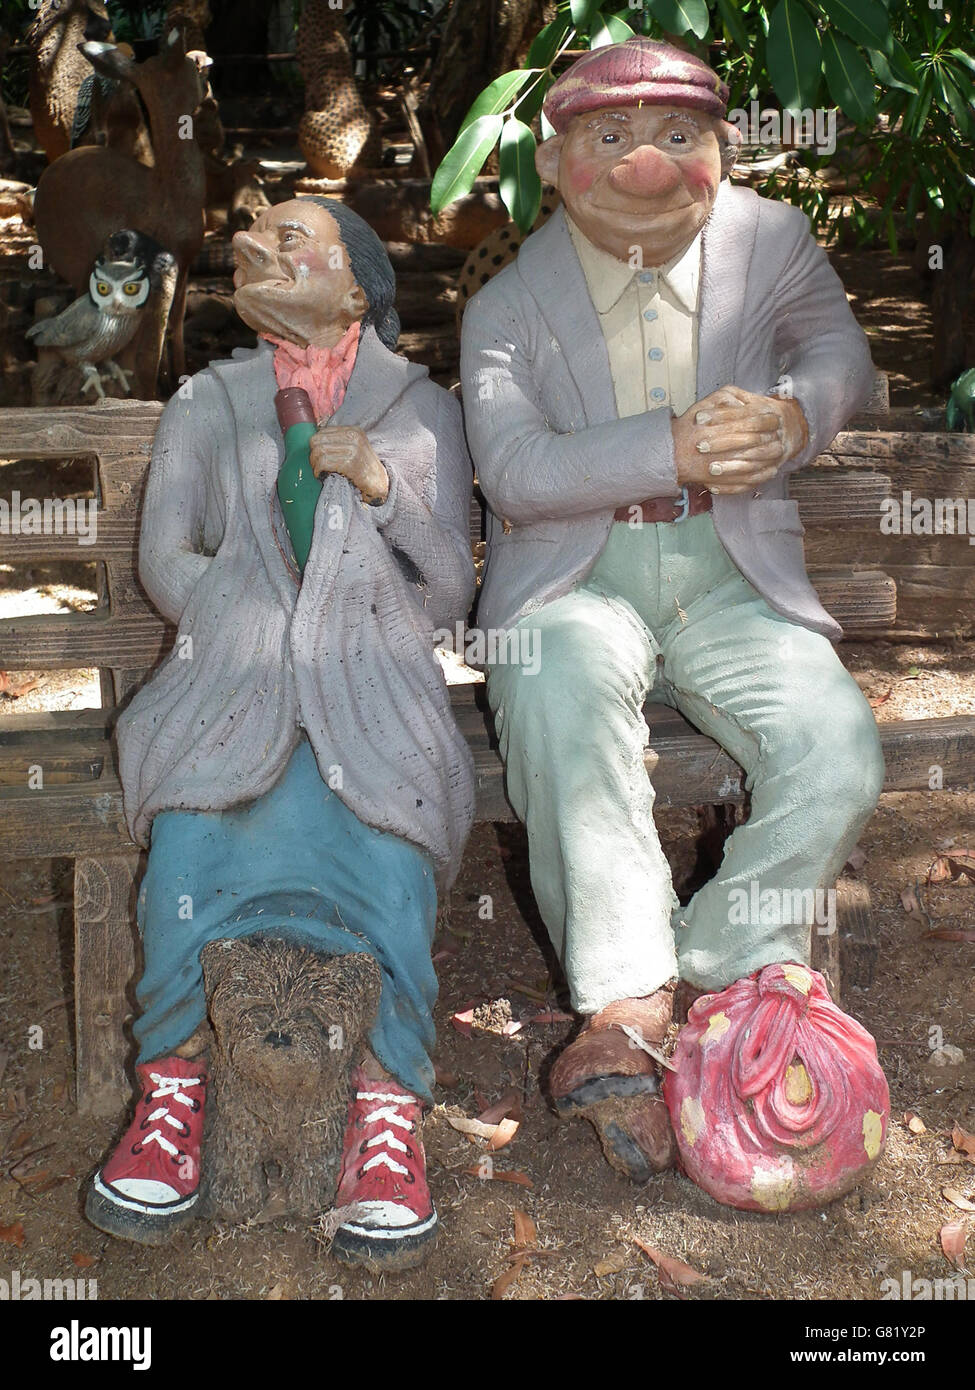 Old Garden Statue: Garden Ornaments, Old Couple, South Africa, 2012 Stock